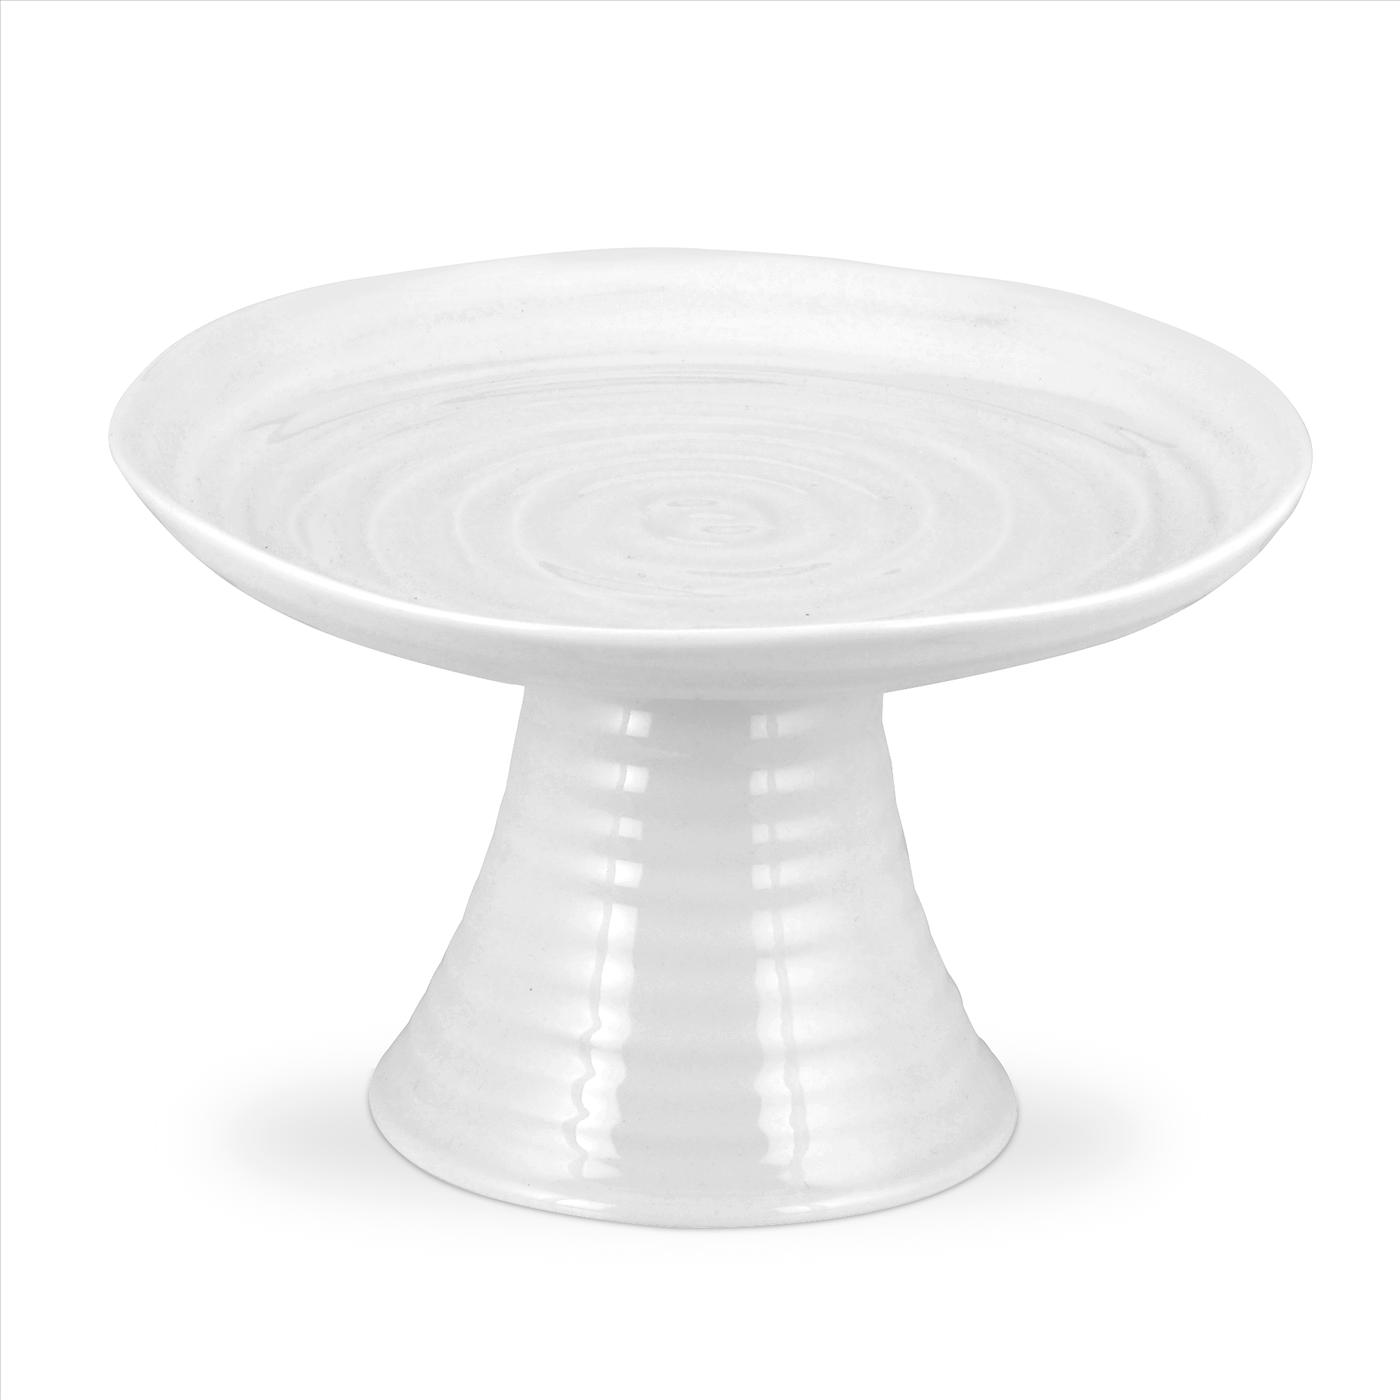 Portmeirion Sophie Conran White Mini Cake Stand image number 0